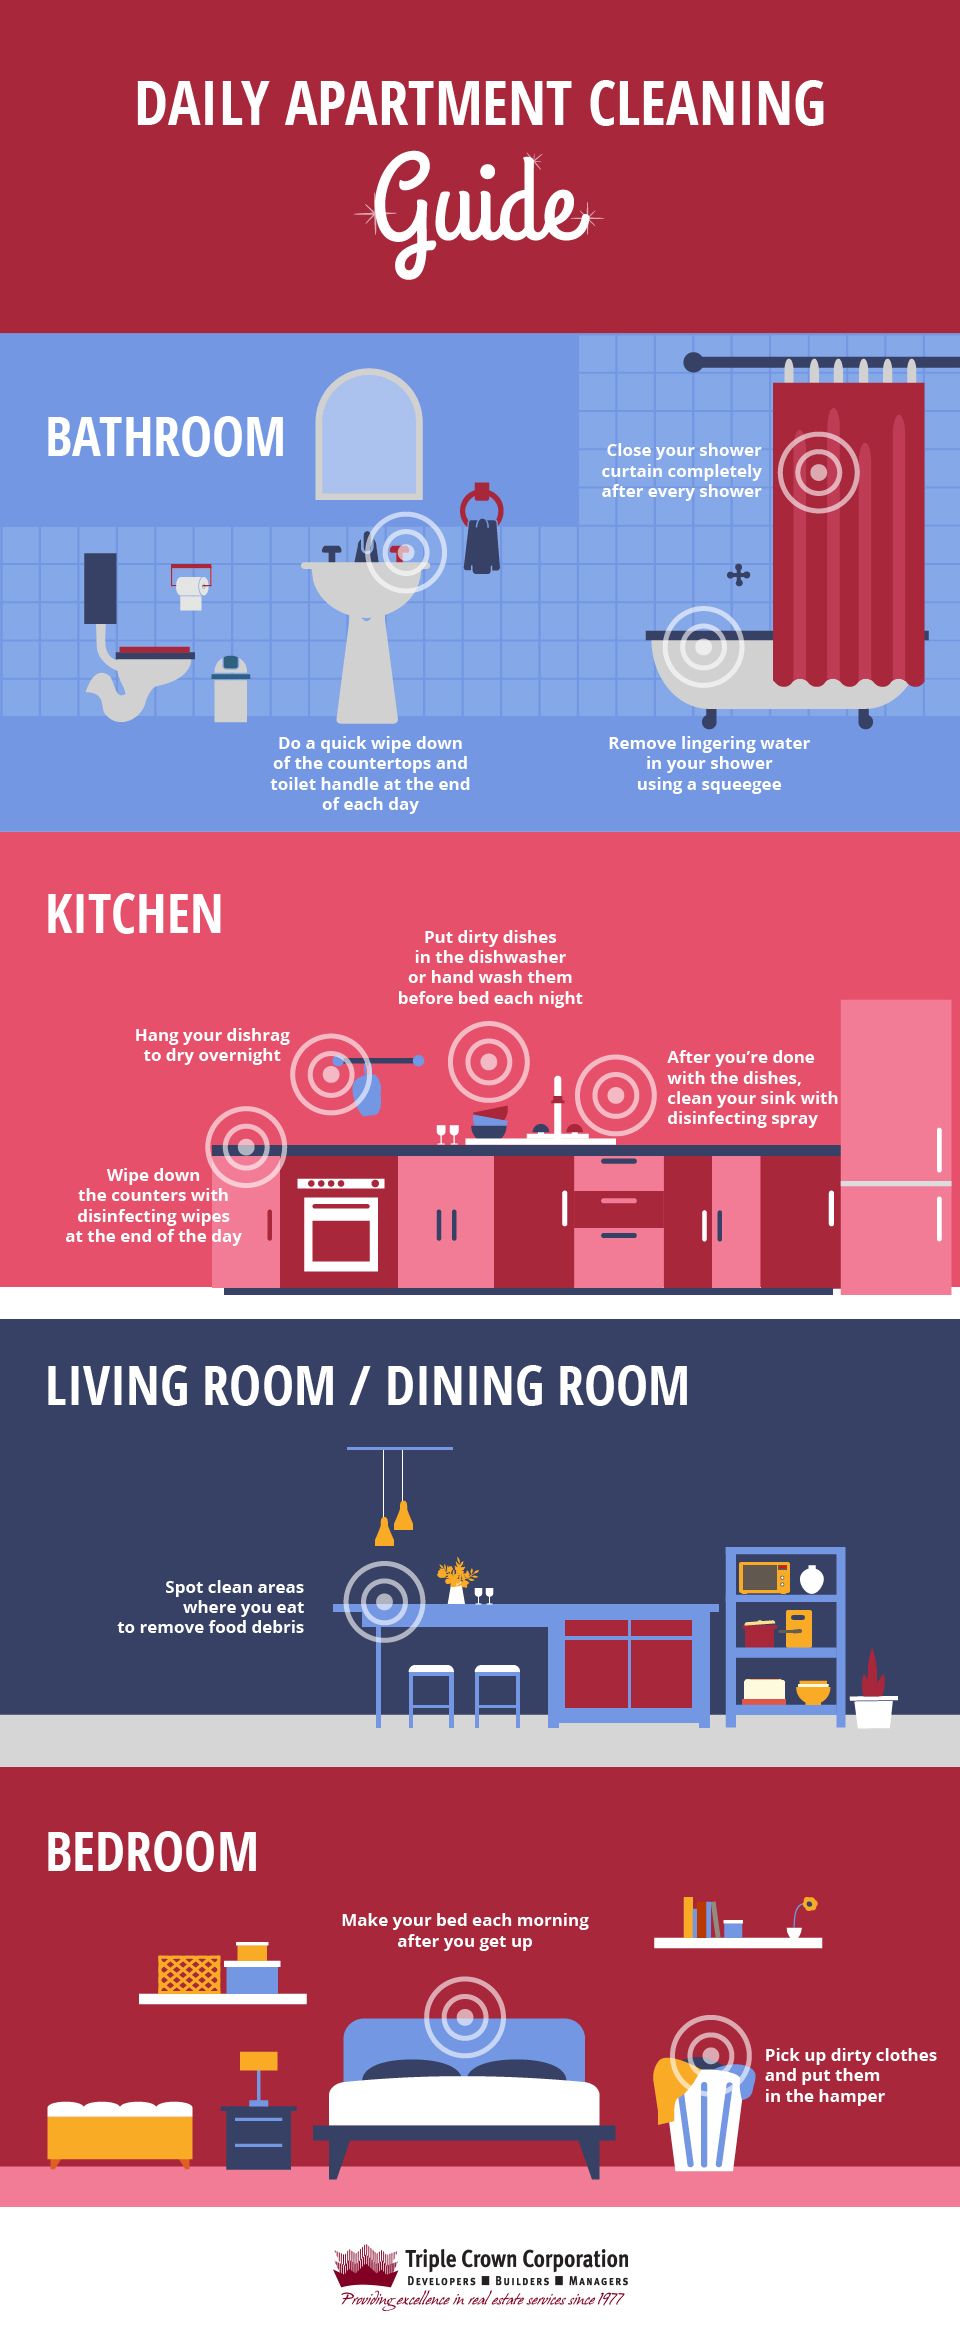 Daily Apartment Cleaning Guide